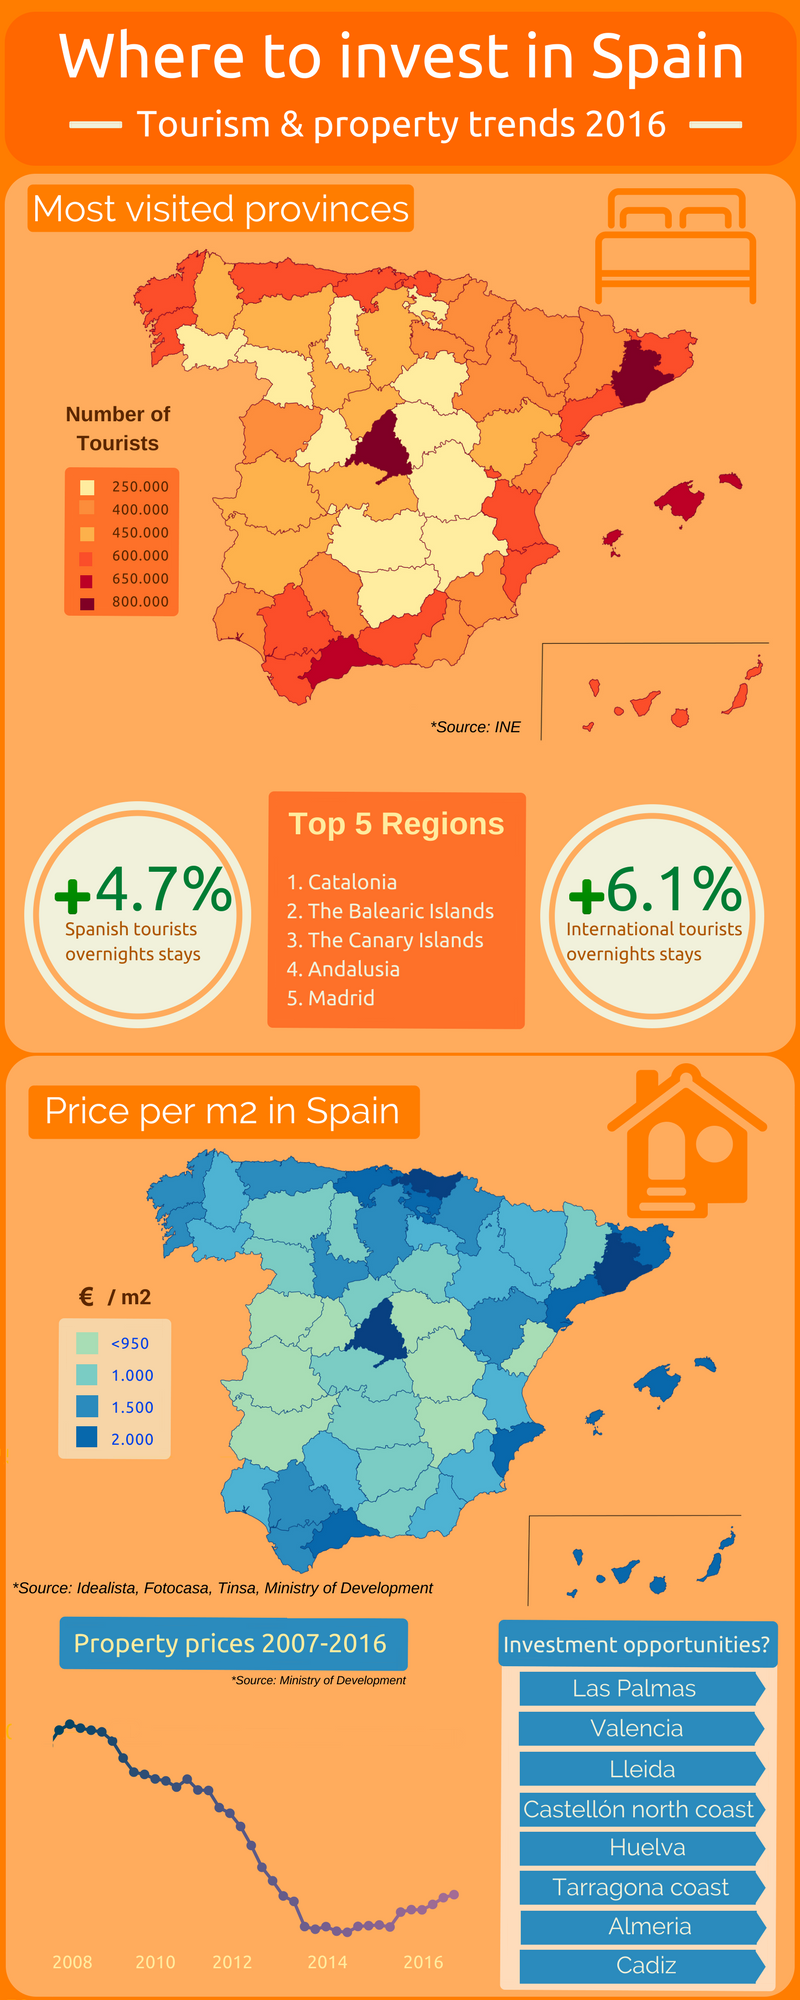 Is 2017 the time to invest in a holiday home in Spain?